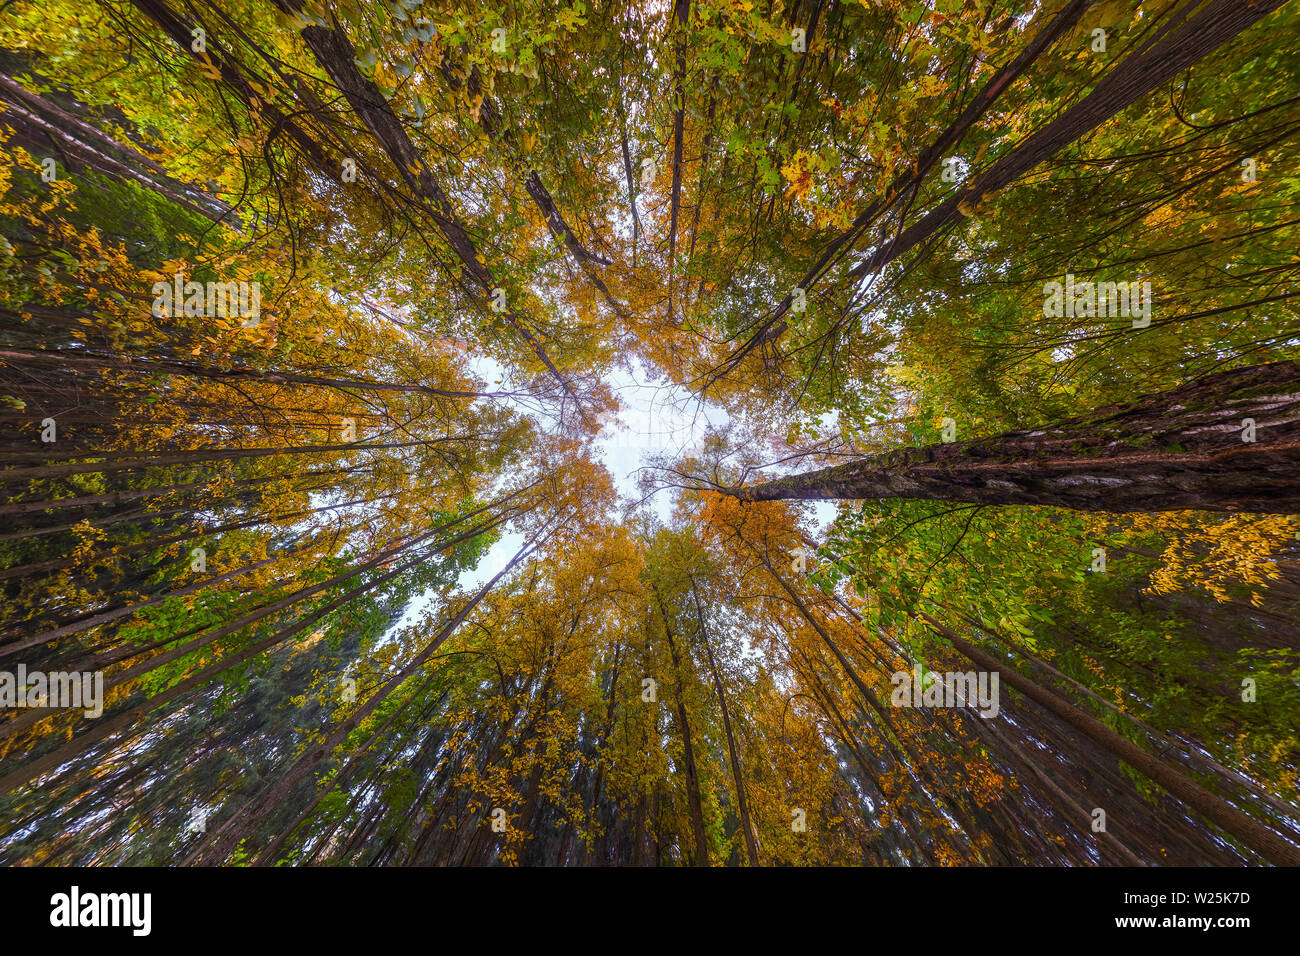 Ultra wide angle upward shot in autumn daylight forest, Cloudy weather. Centripetal composition. Stock Photo